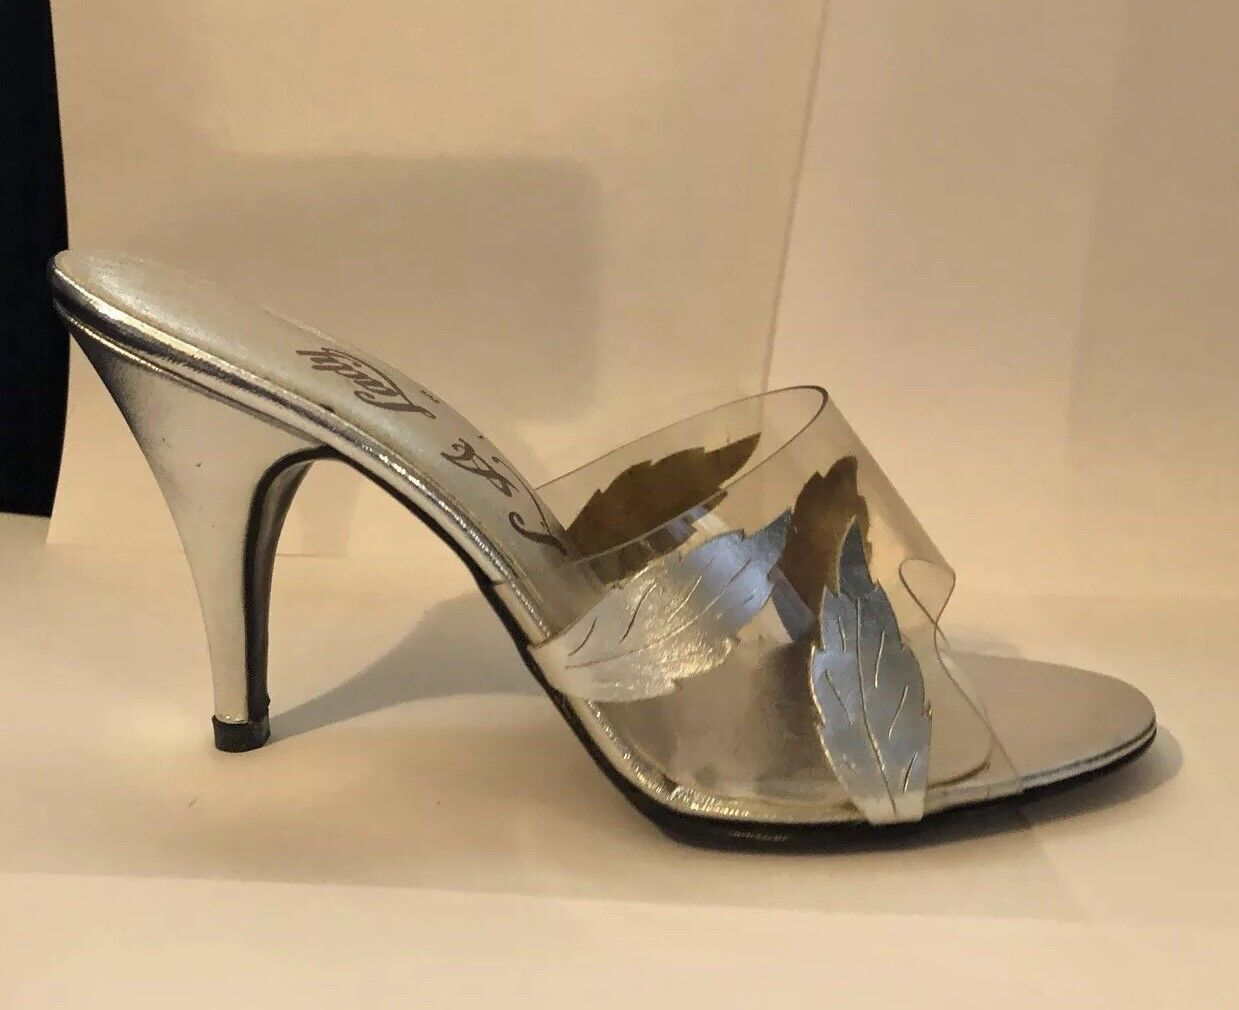 L. A. Lady High Heels Vintage shoes 7 M Silver Open Toe  Preowned